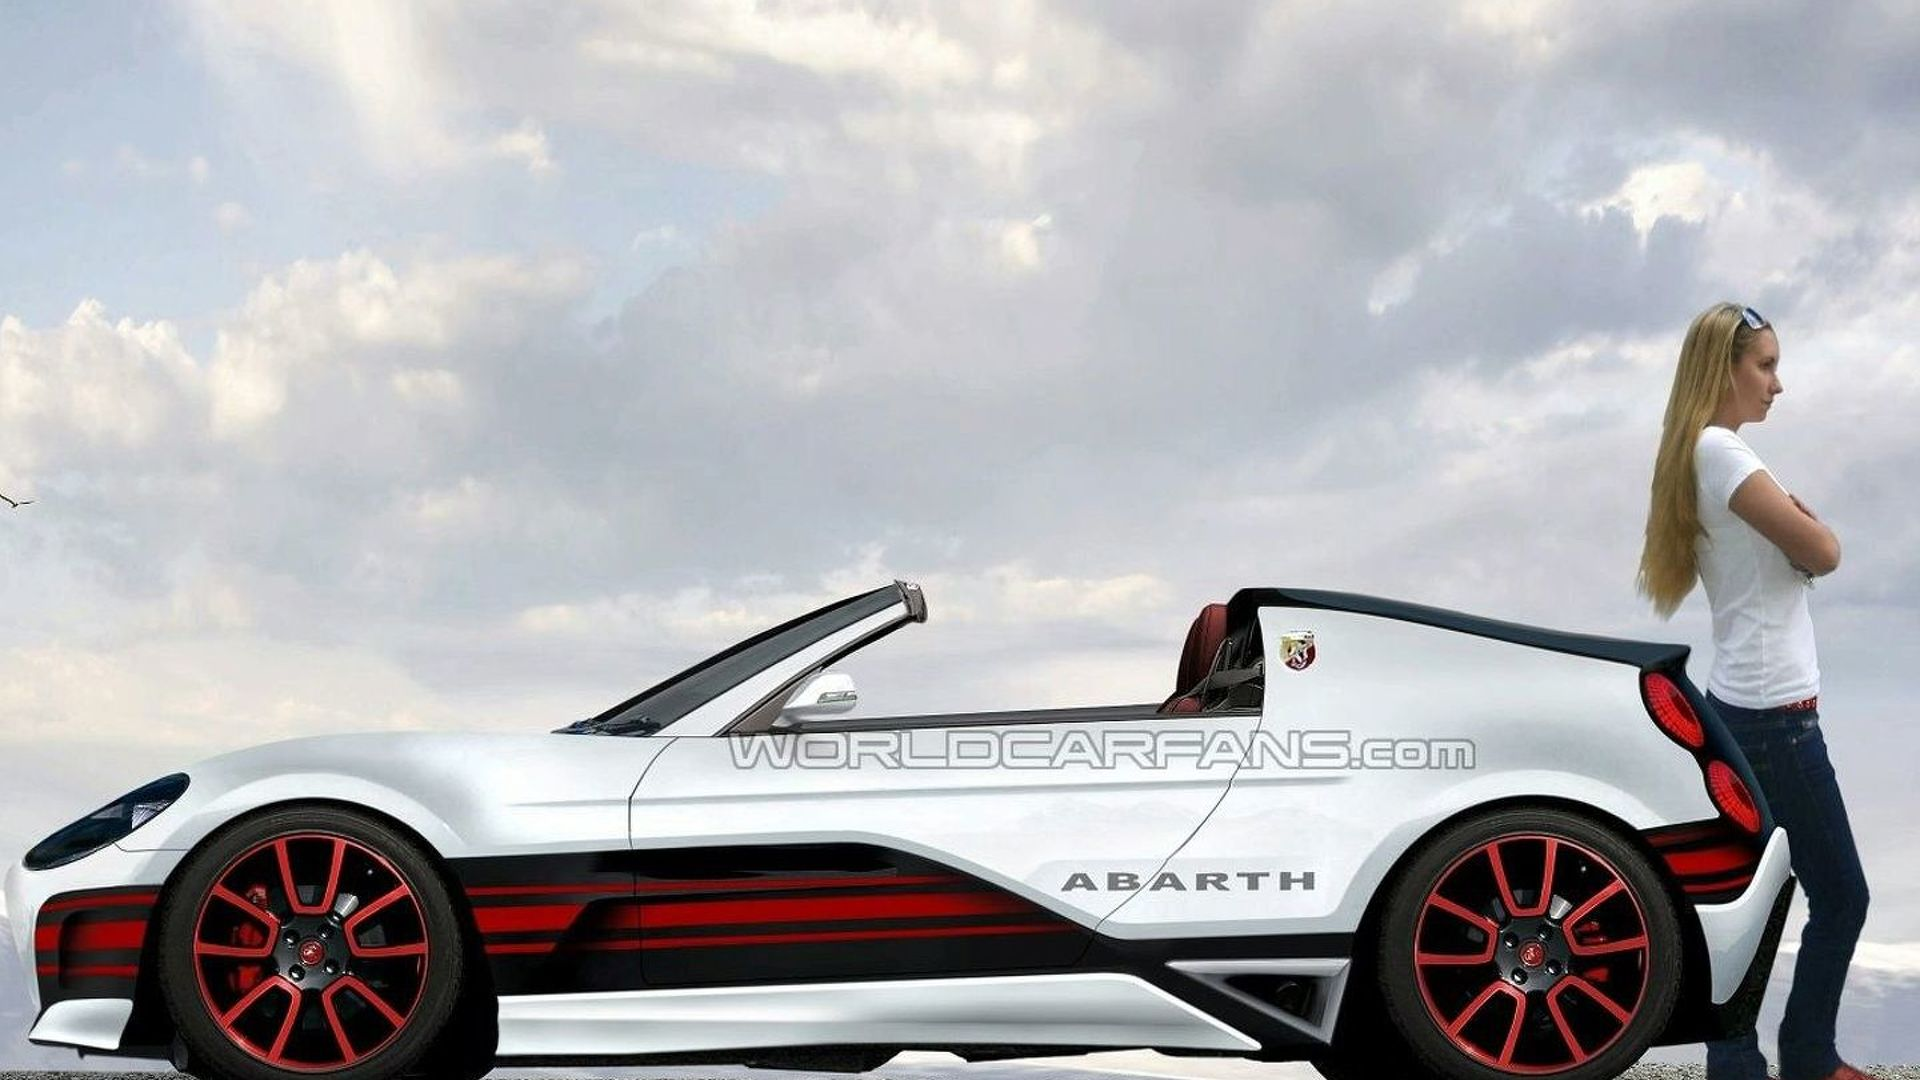 Abarth confirm two-seater coupe - rendered